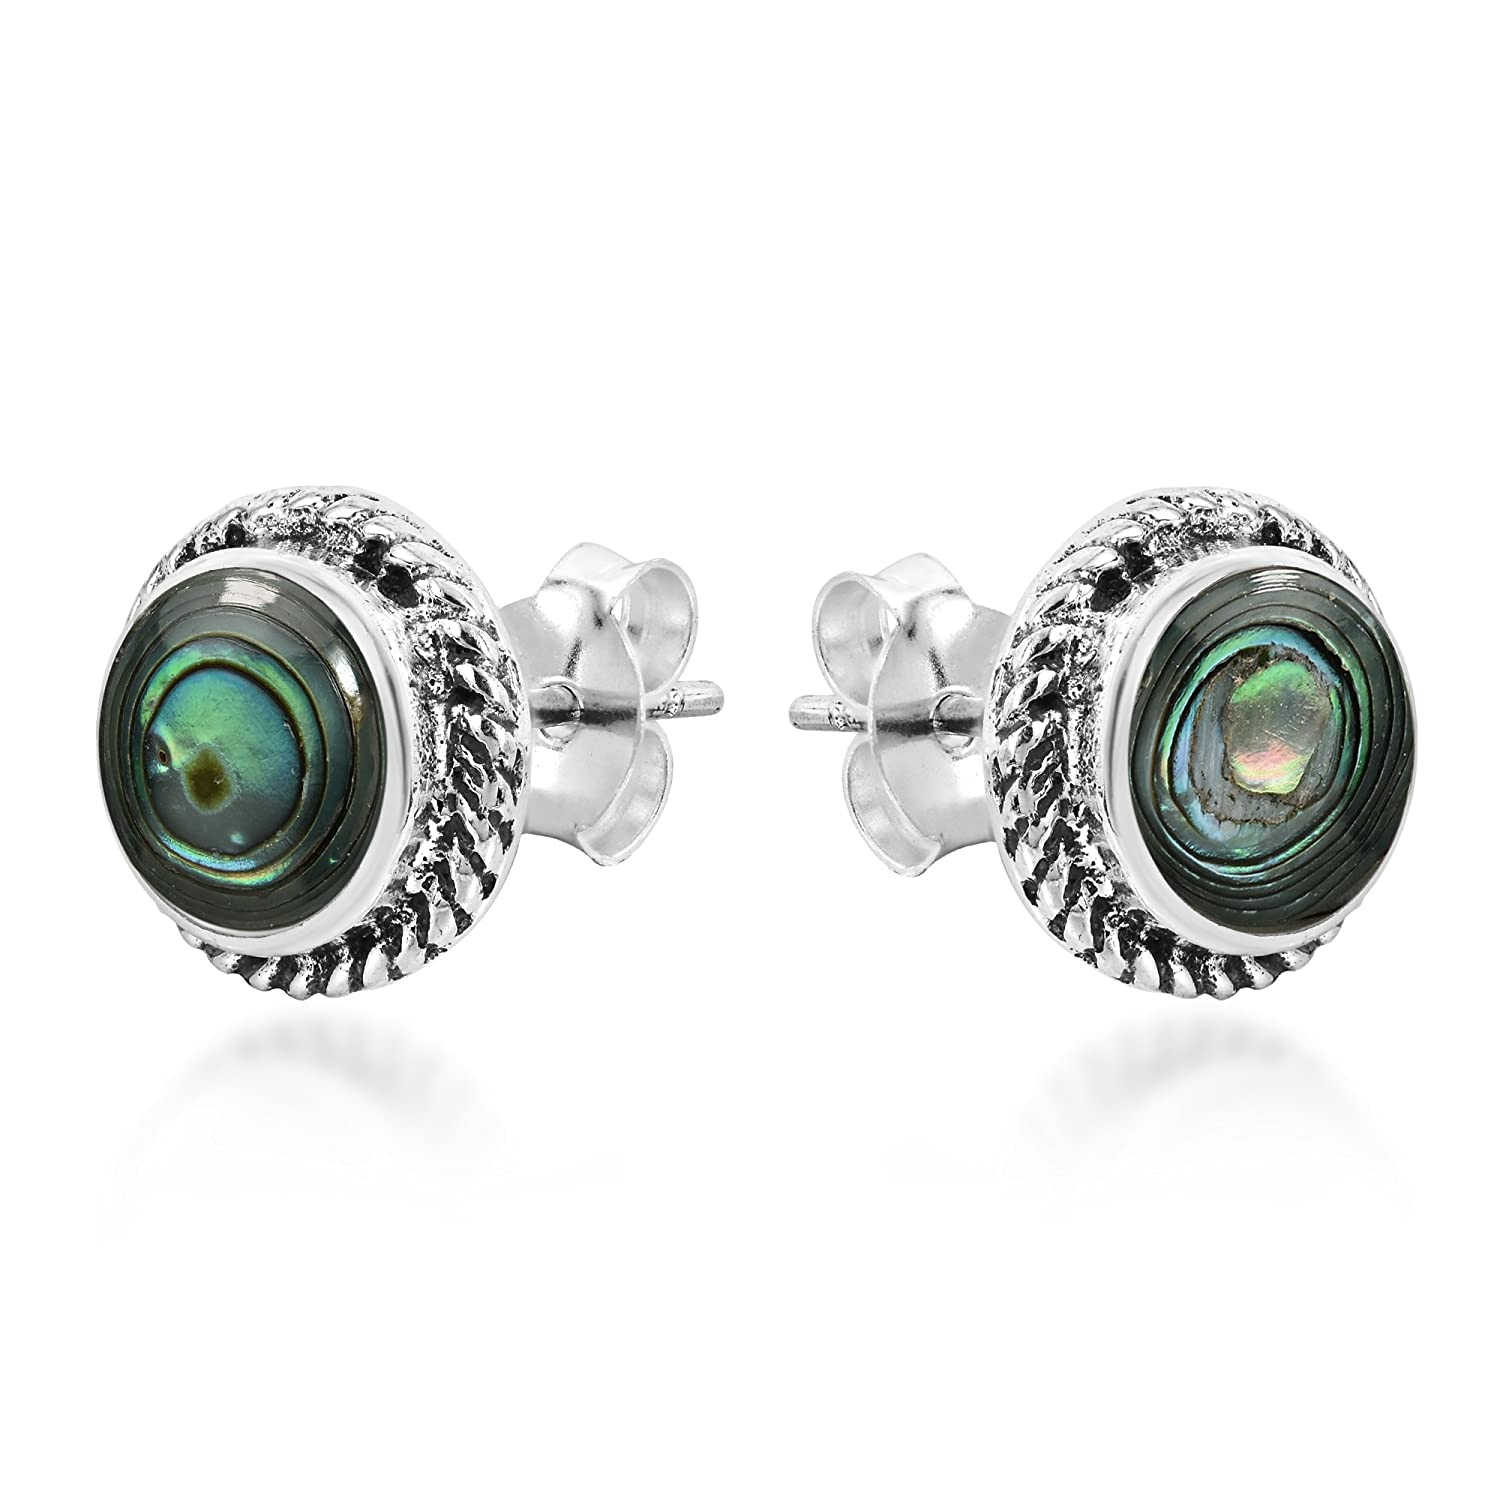 Classic /& Stylish Round Abalone Shell Inlays .925 Sterling Silver Stud Earrings